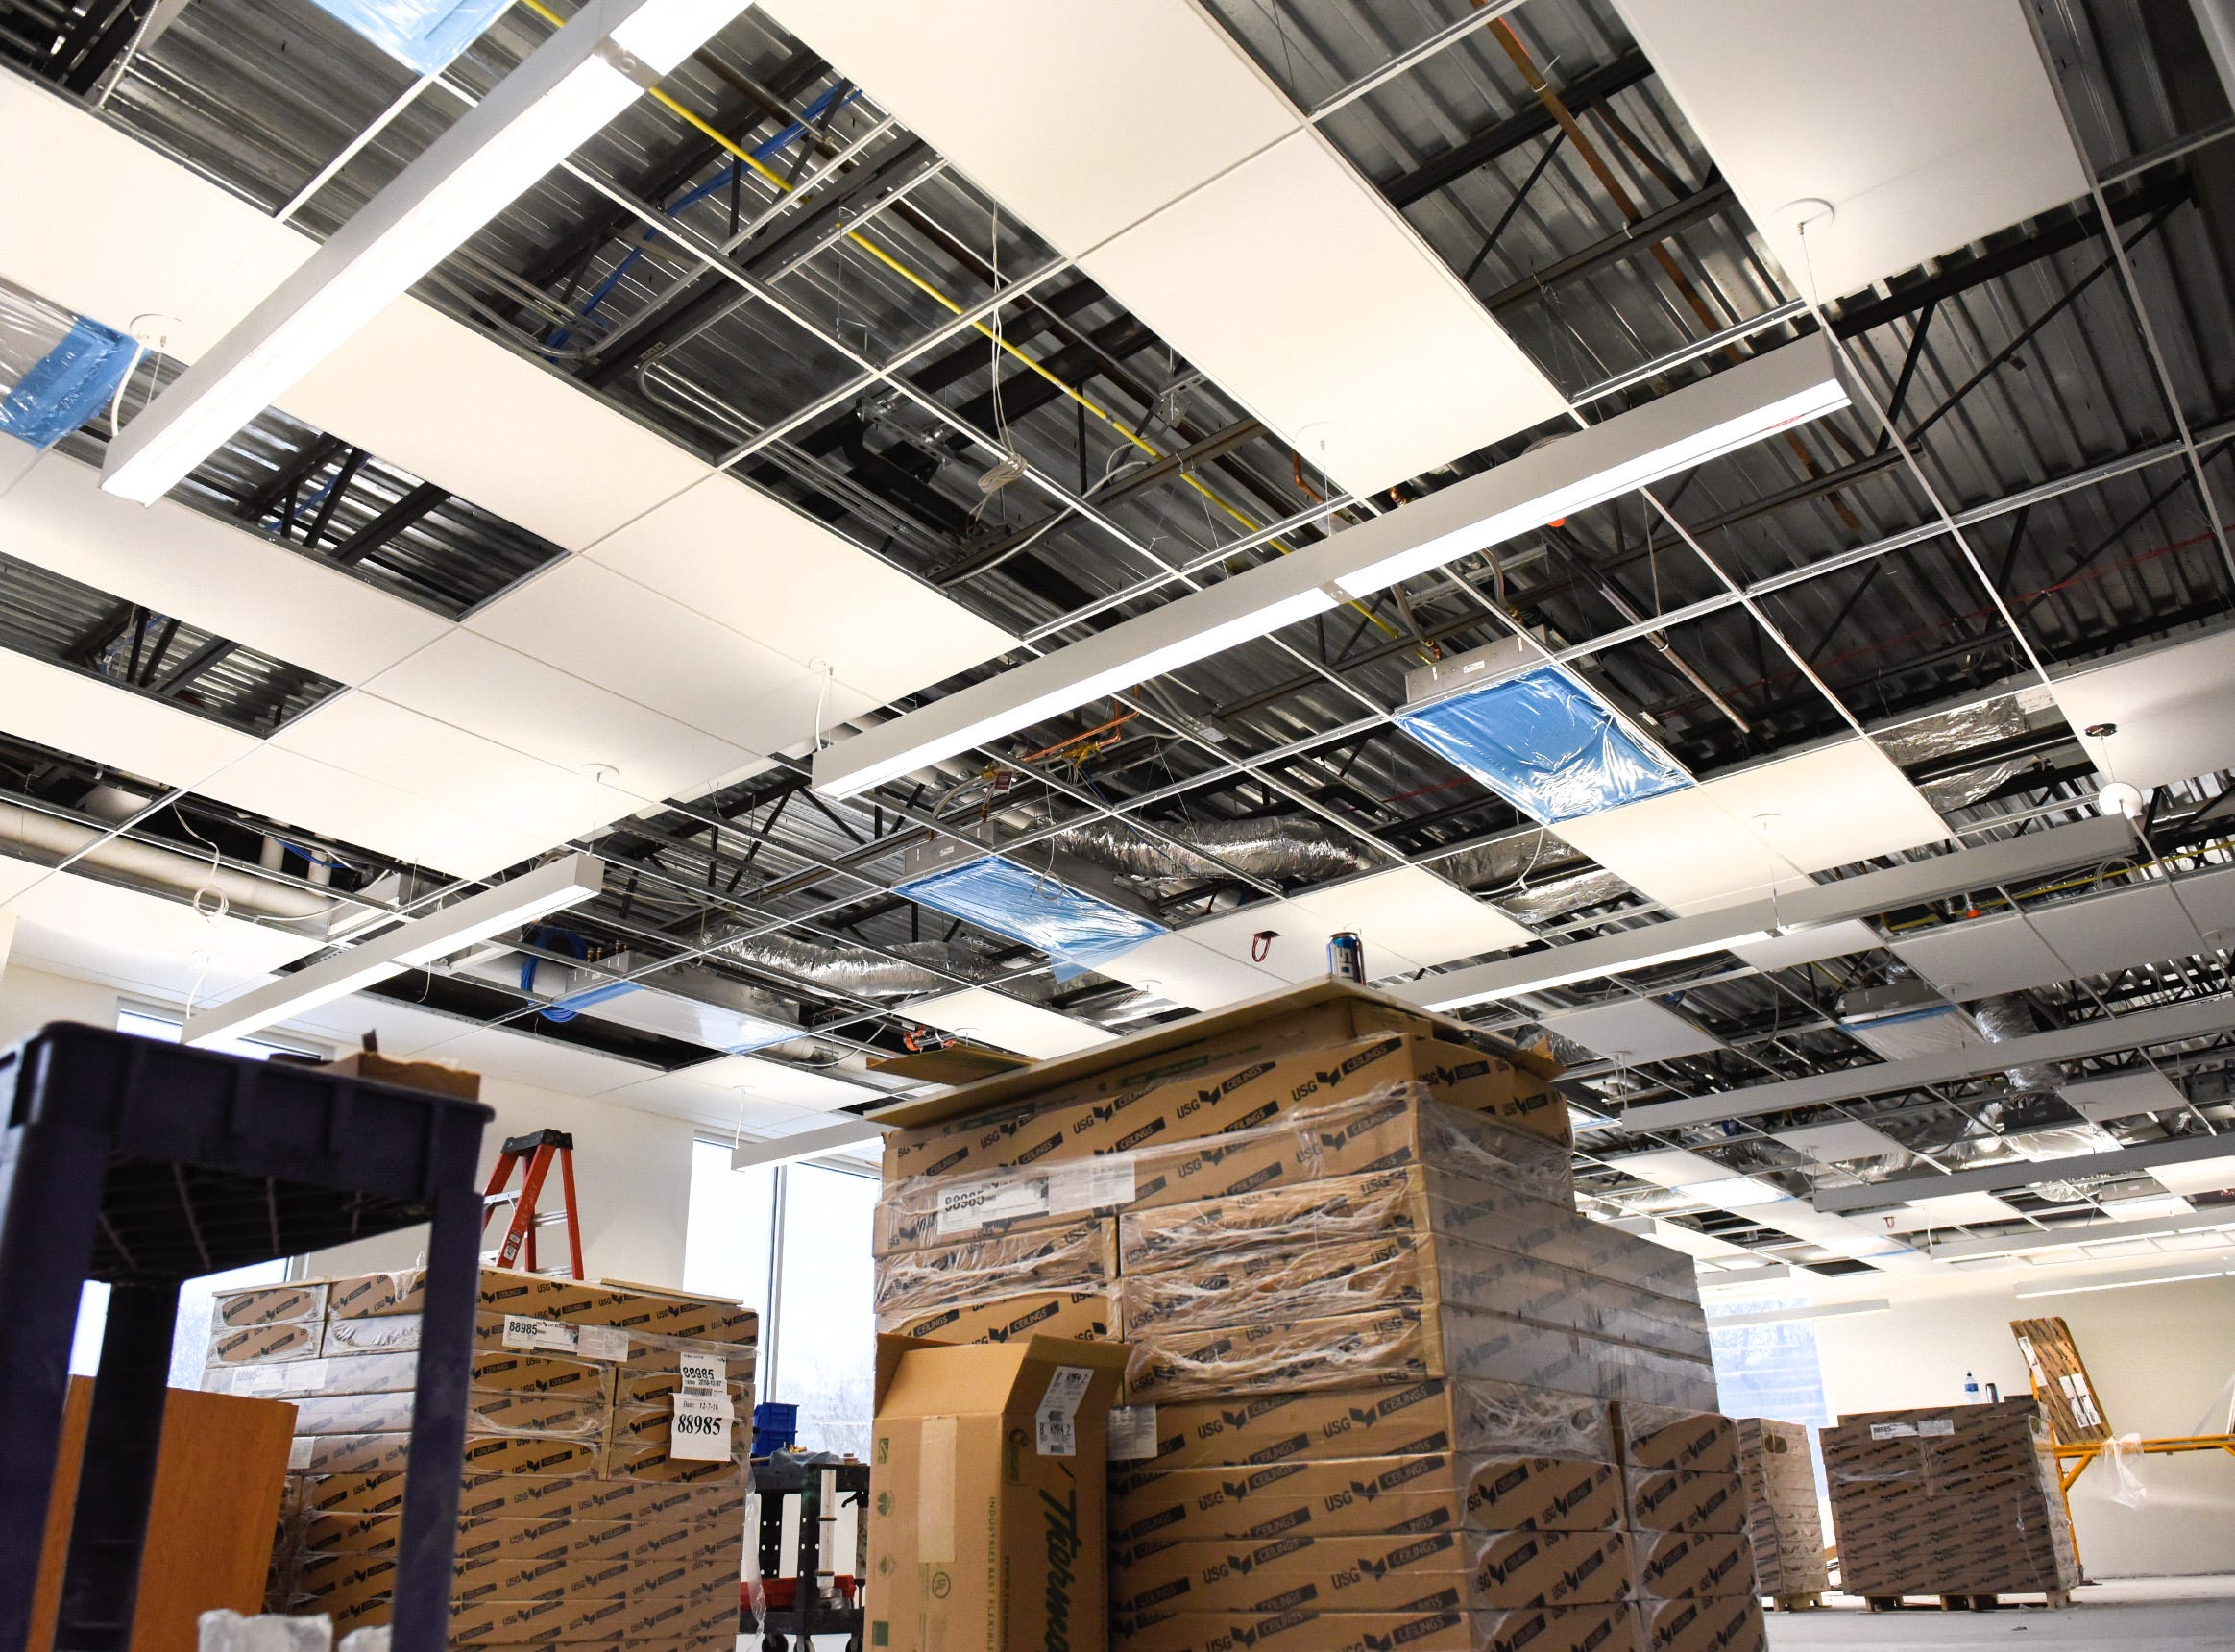 LED lighting and ceiling tiles are being installed in learning neighborhood 1 Thursday, Jan. 17, at the new Tech High School.